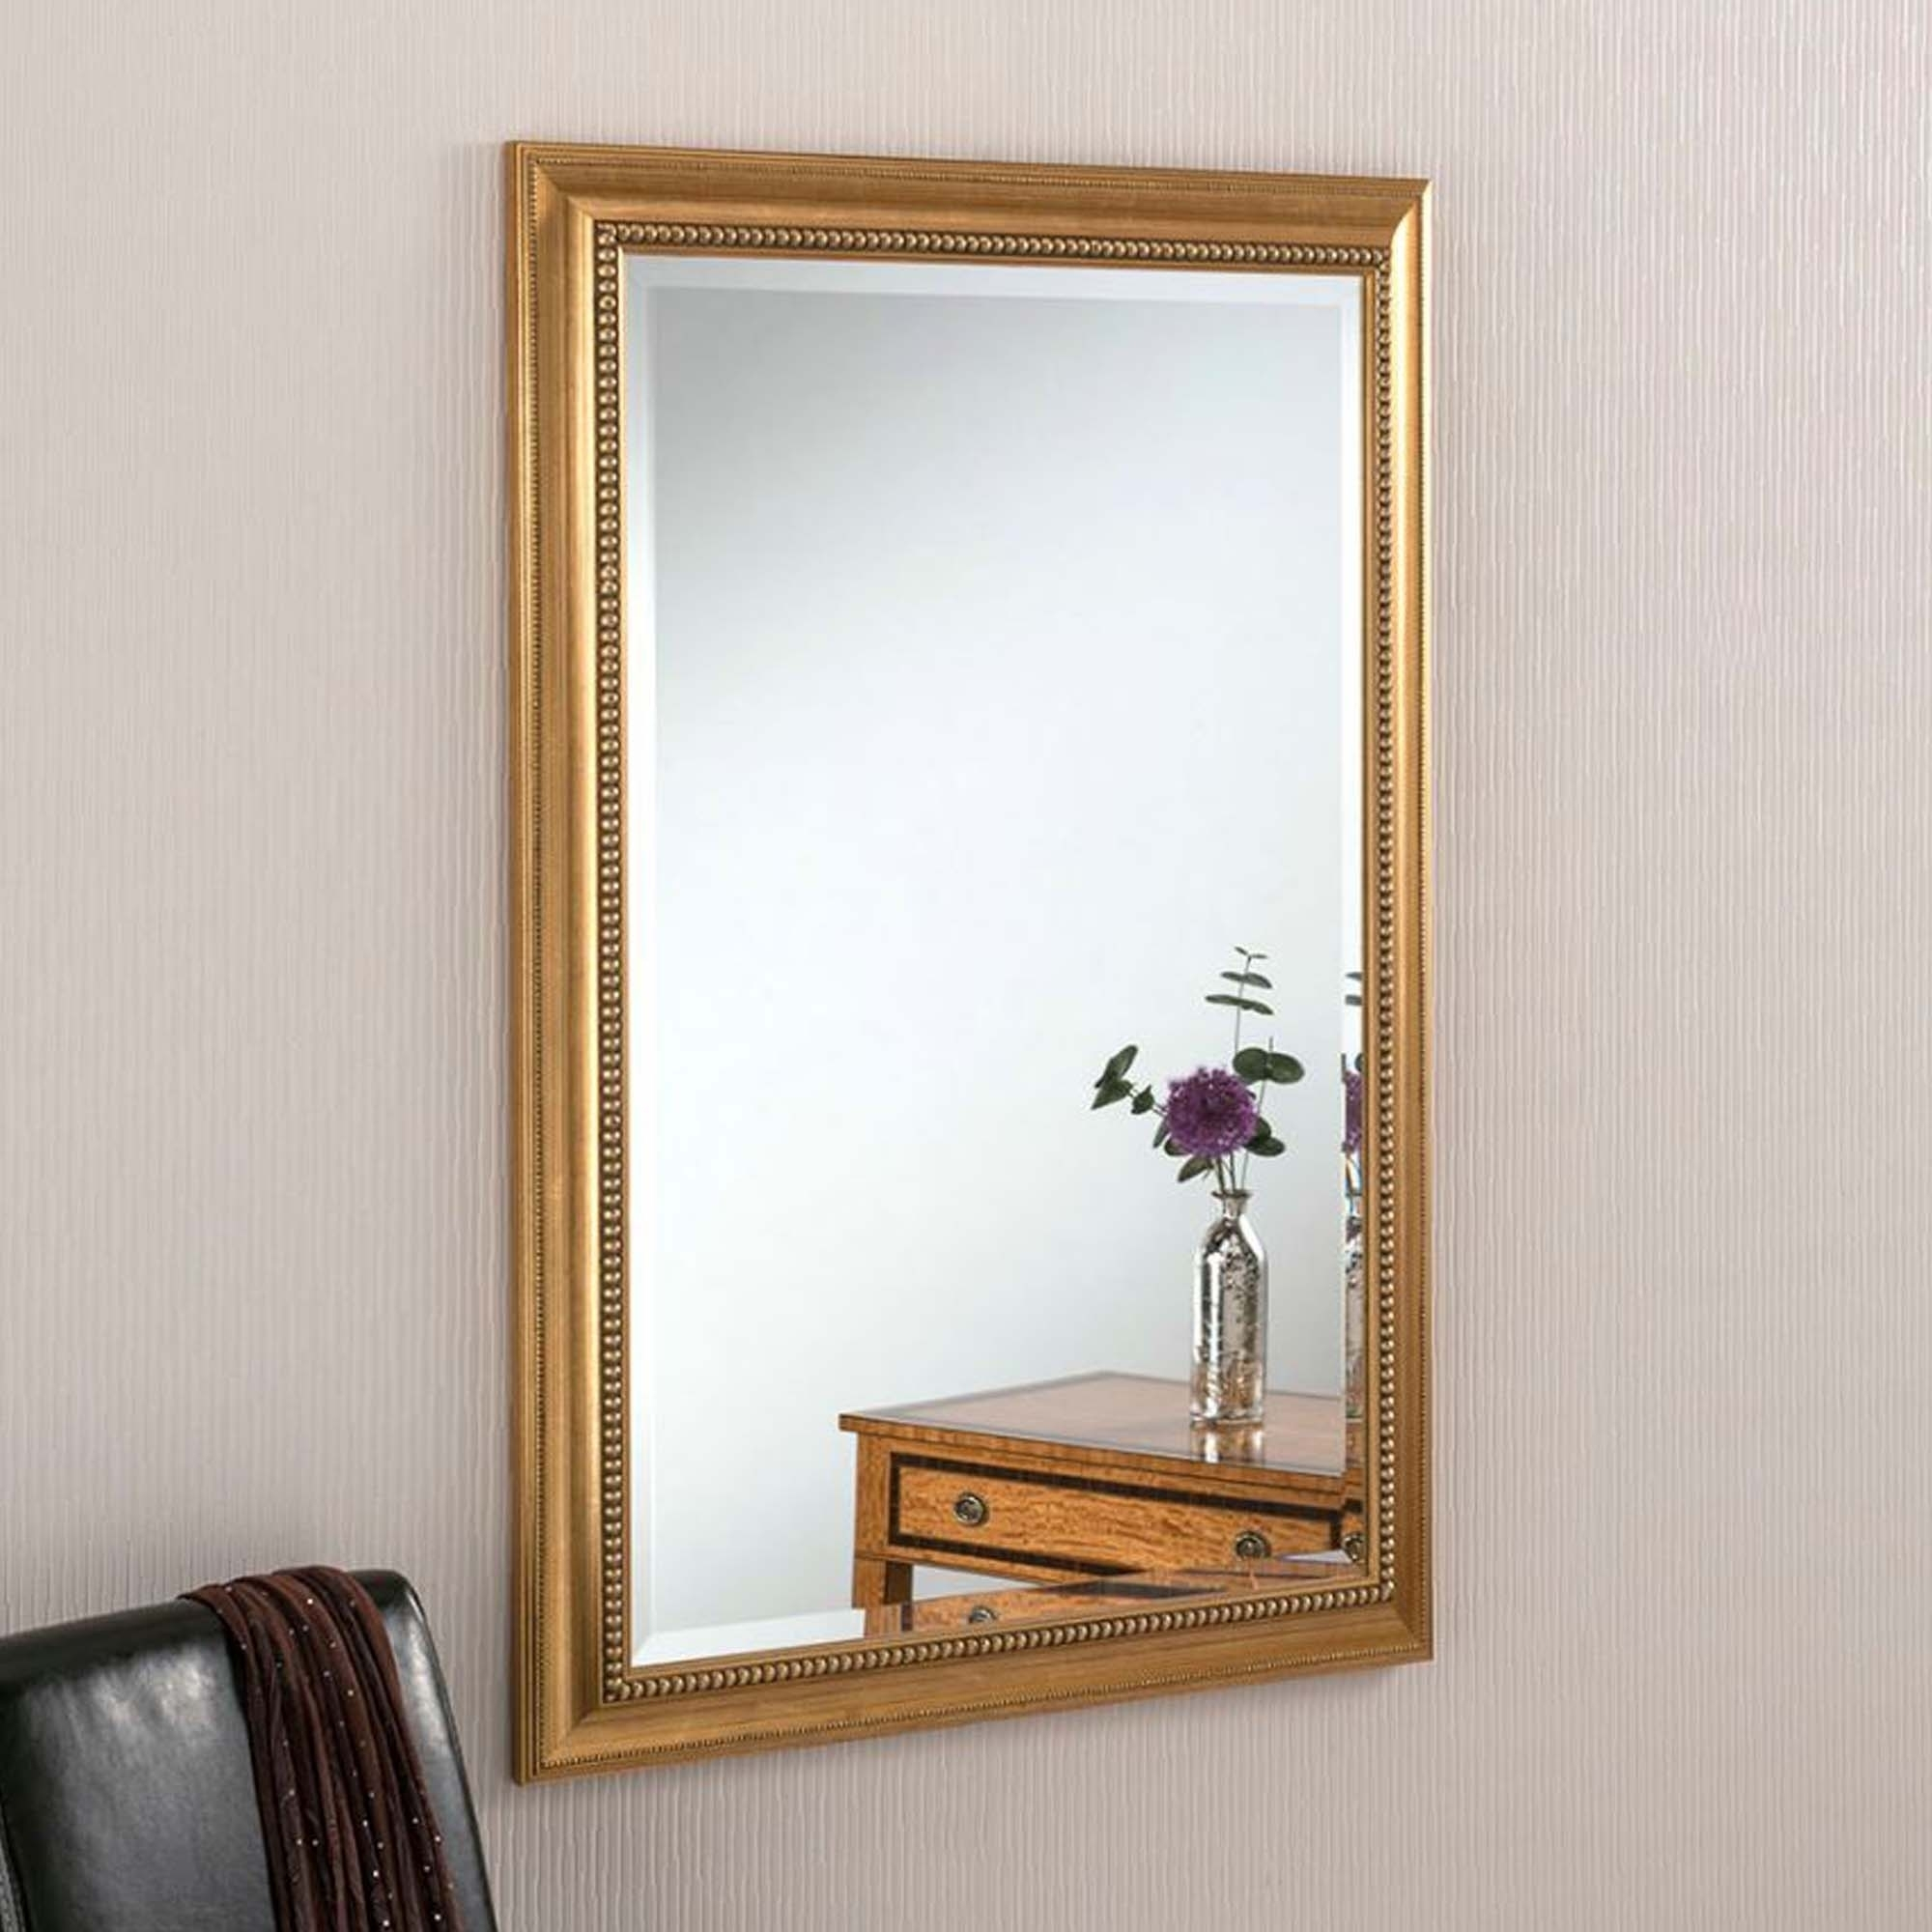 Ornate Gold Beaded Rectangular Wall Mirror | Decor ...